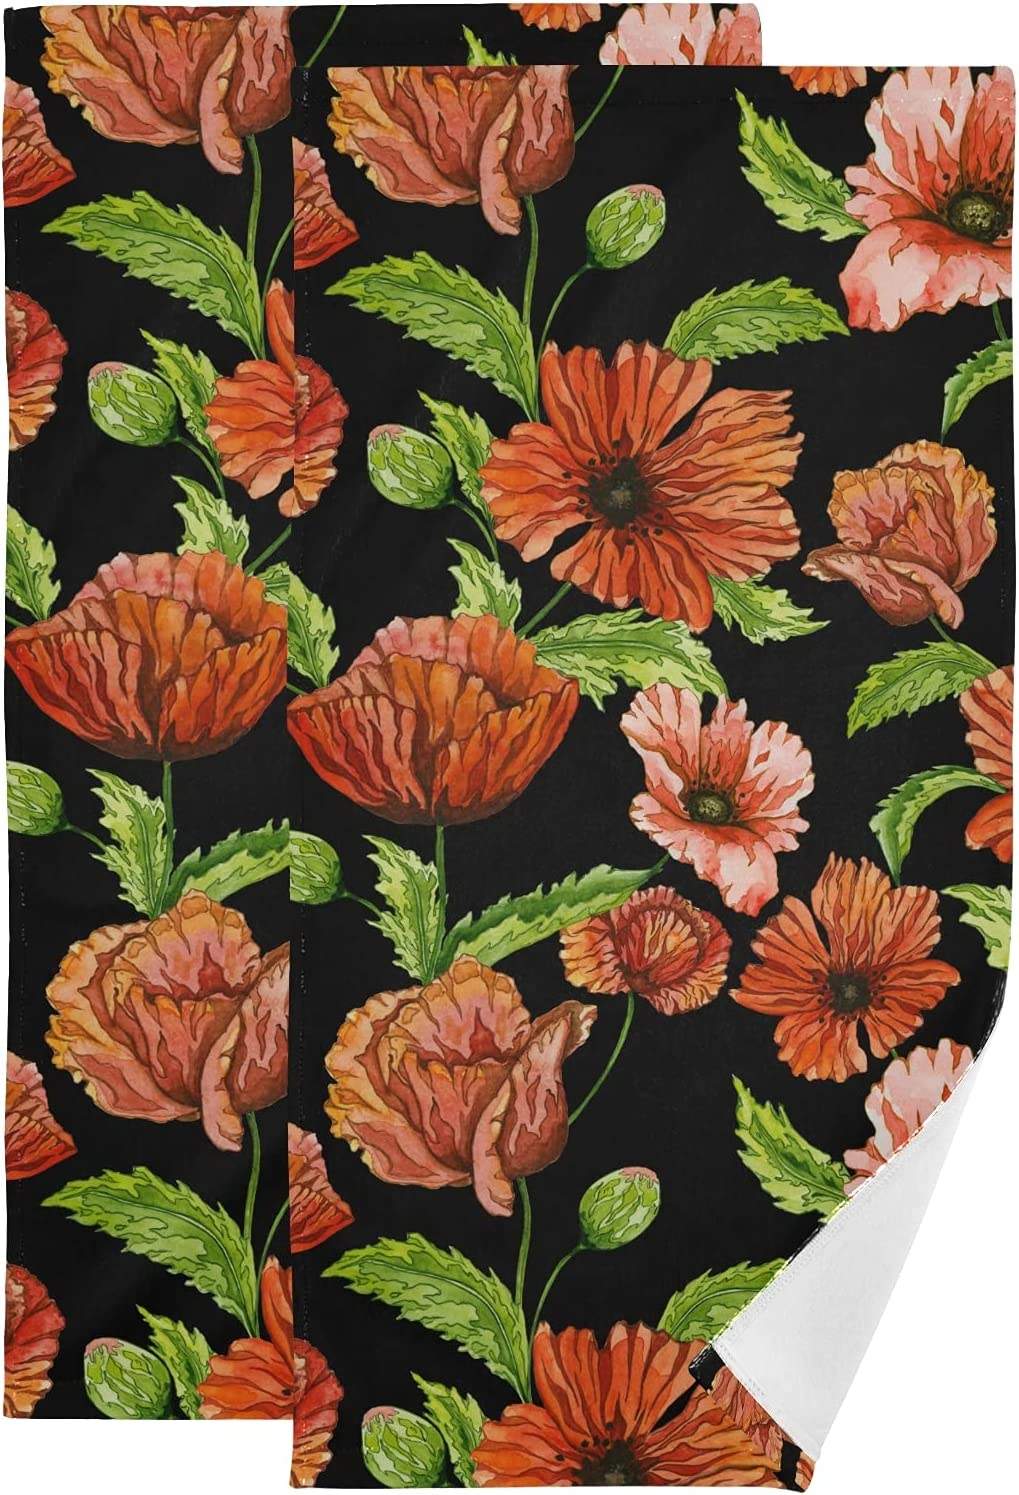 Red Poppy Flowers Vivid Floral Leaves Towel Black Face Limited price sale Set on Charlotte Mall of